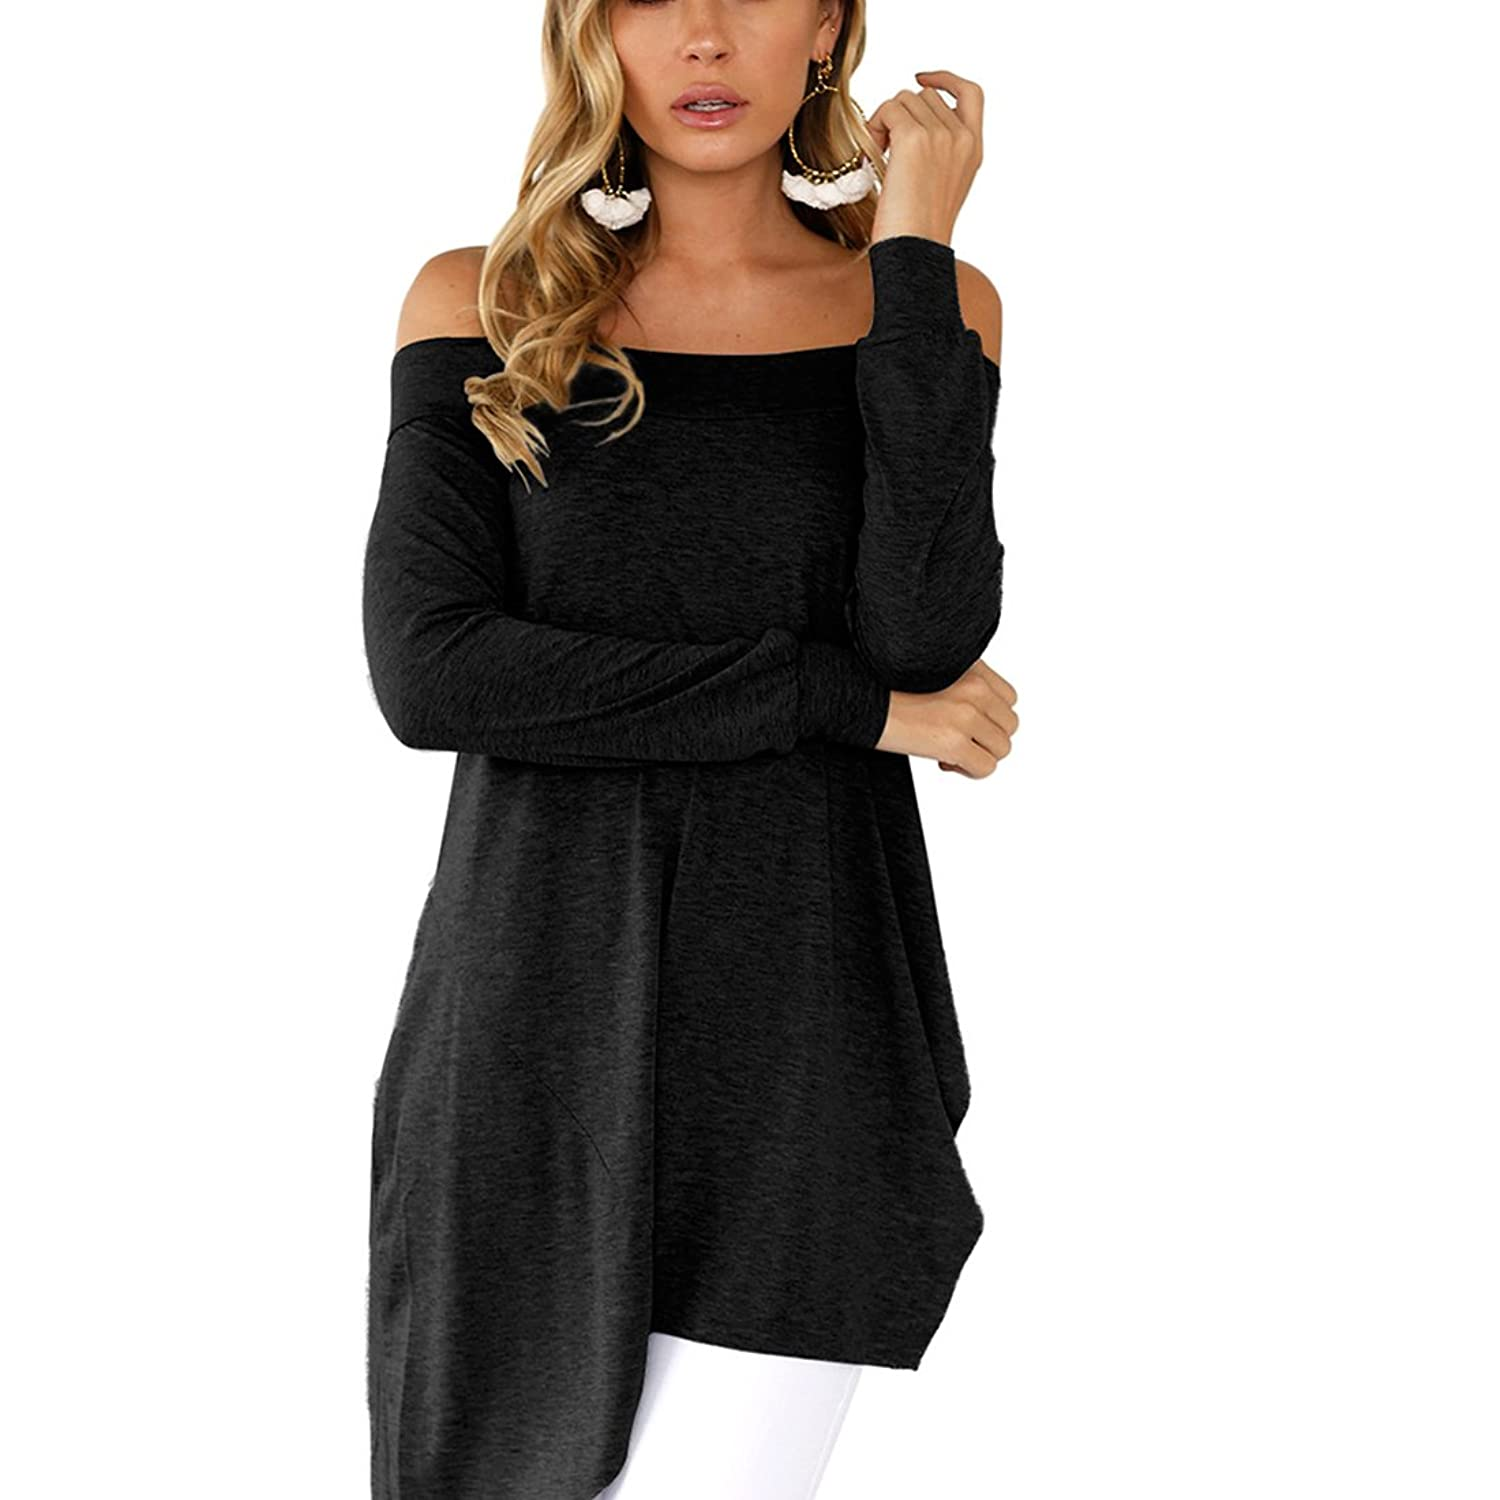 BSTWLKJ Women's Sexy Off Shoulder Irregular Hem Long Sleeve T-Shirts Tops:  Amazon.co.uk: Clothing